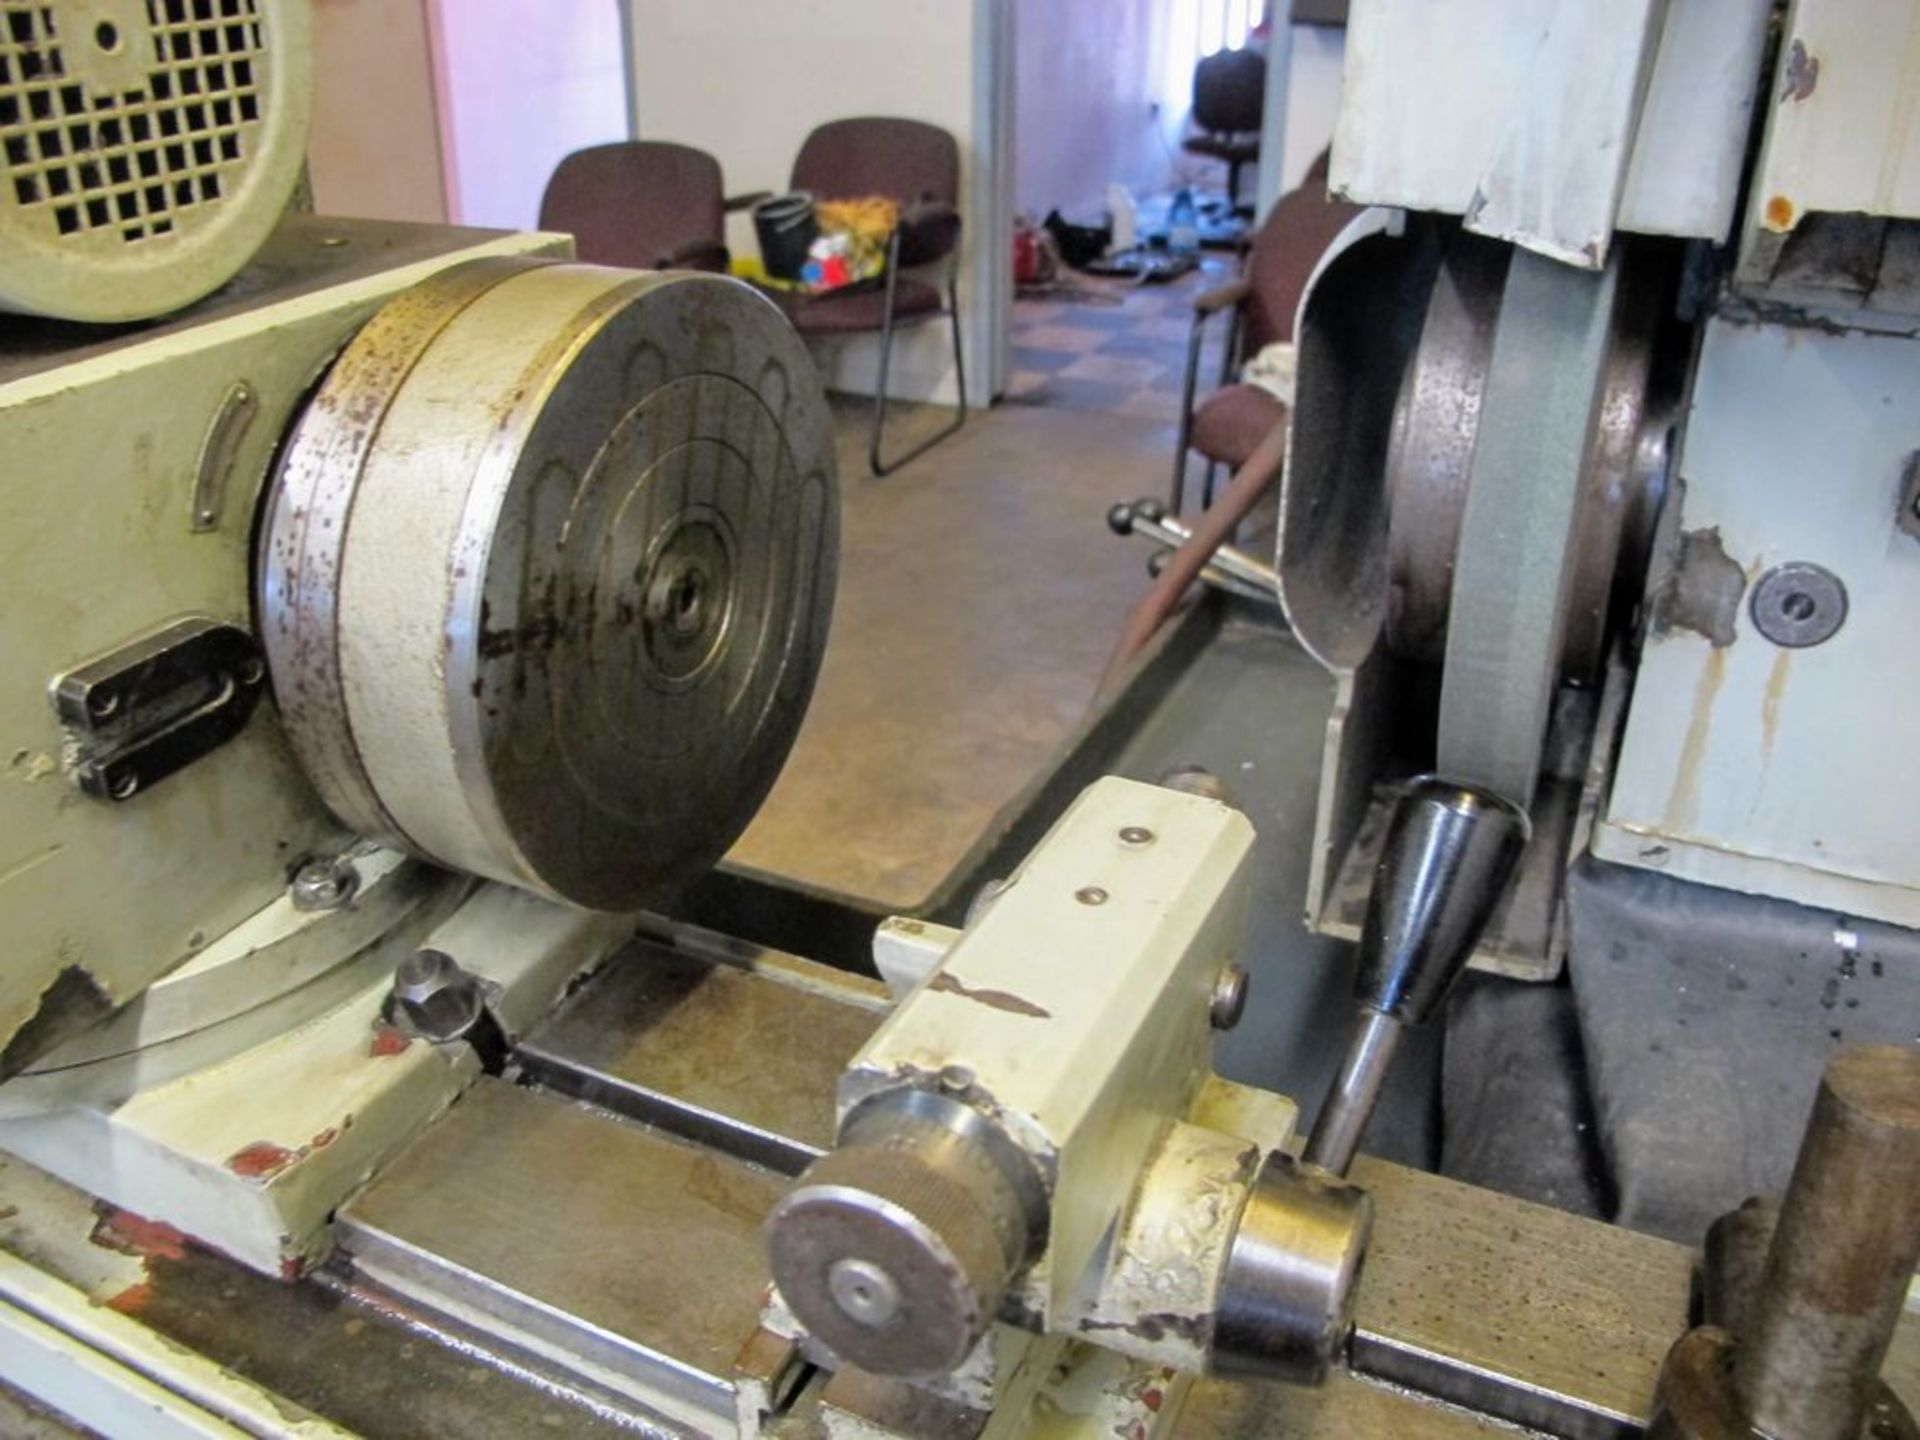 """TOS BU28-630 CYLINDRICAL GRINDER, 11"""" X 24"""", S/N 578016 W/8"""" MAGNETIC CHUCK, TAIL STOCK, TOOL - Image 4 of 6"""